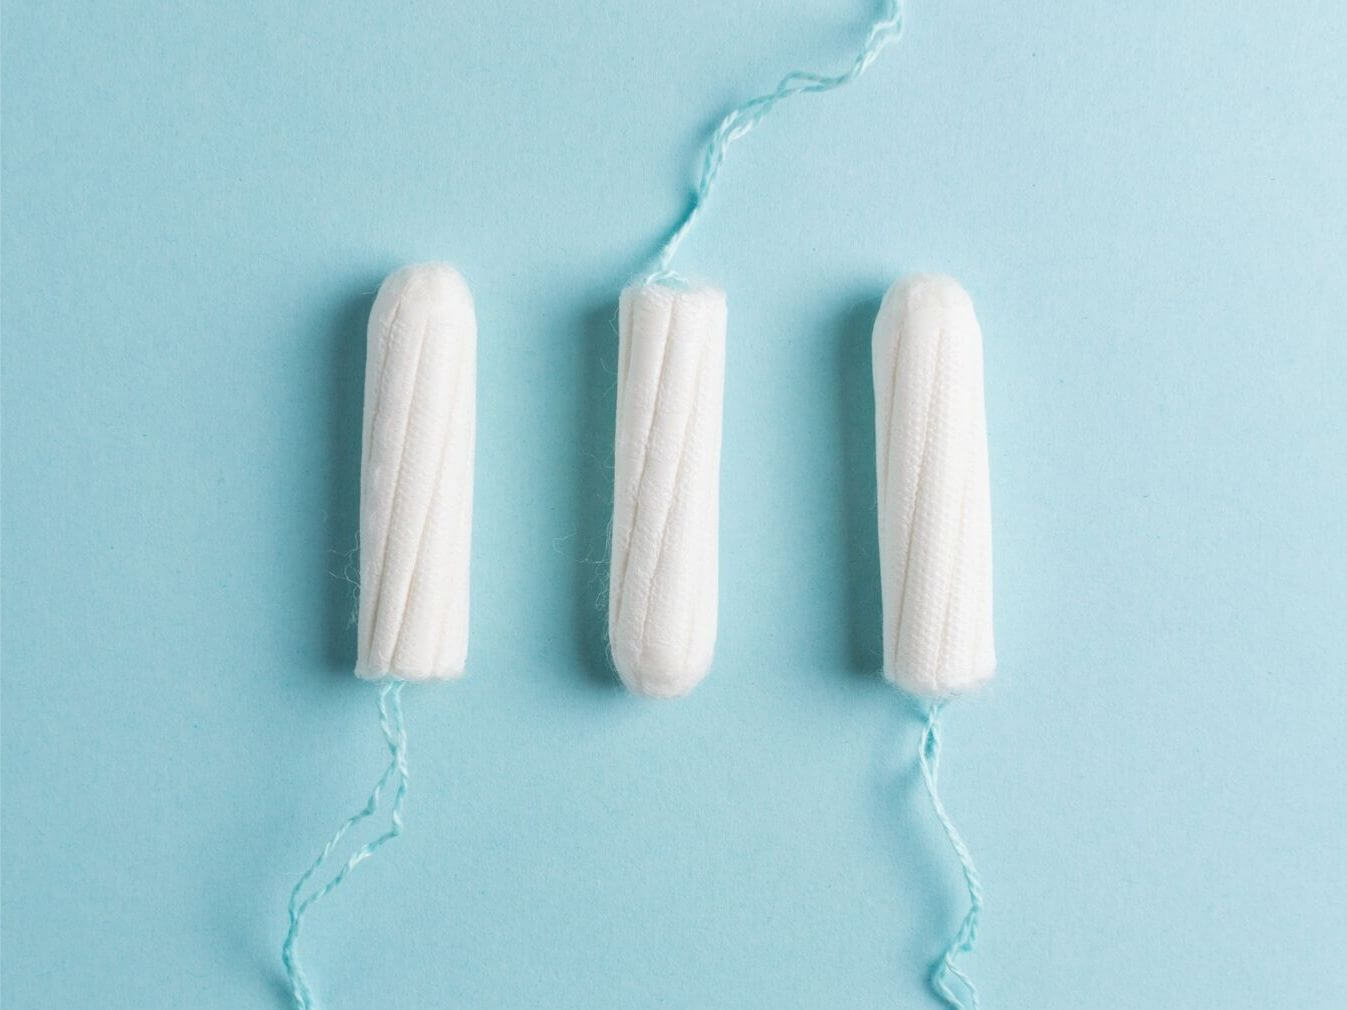 How to put a Tampon On